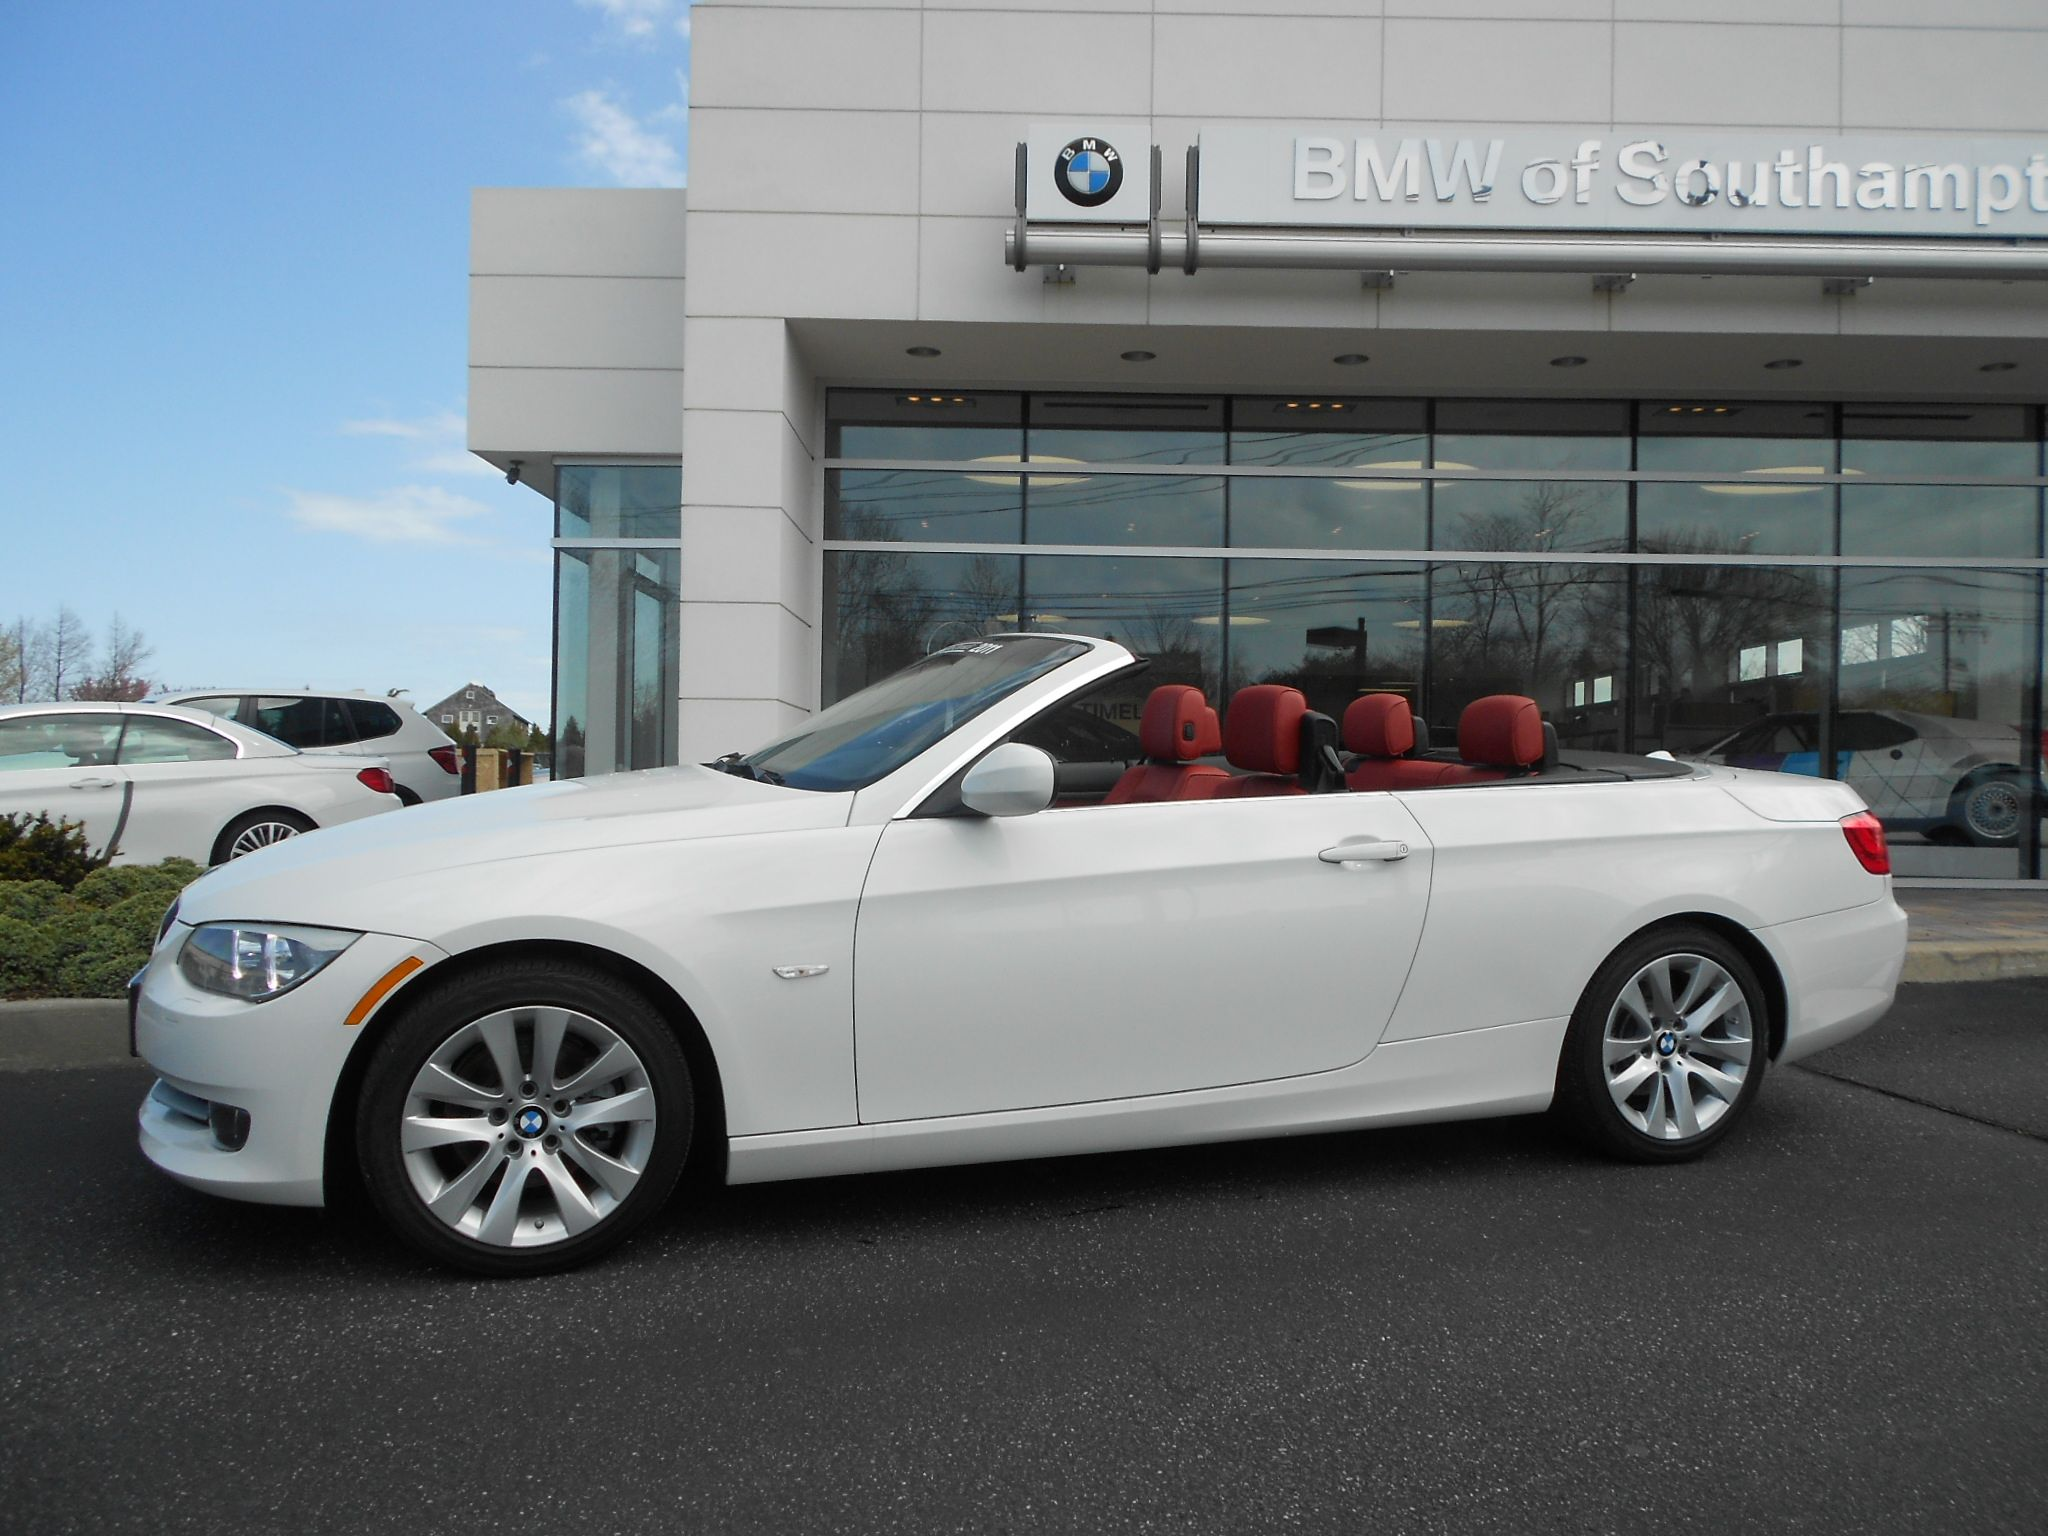 hight resolution of certified used 2011 bmw 328i convertible 3 for sale in southampton ny wbadw7c58be542725 2011bmw bmw328iconvertible bmwconvertible southampton bmw